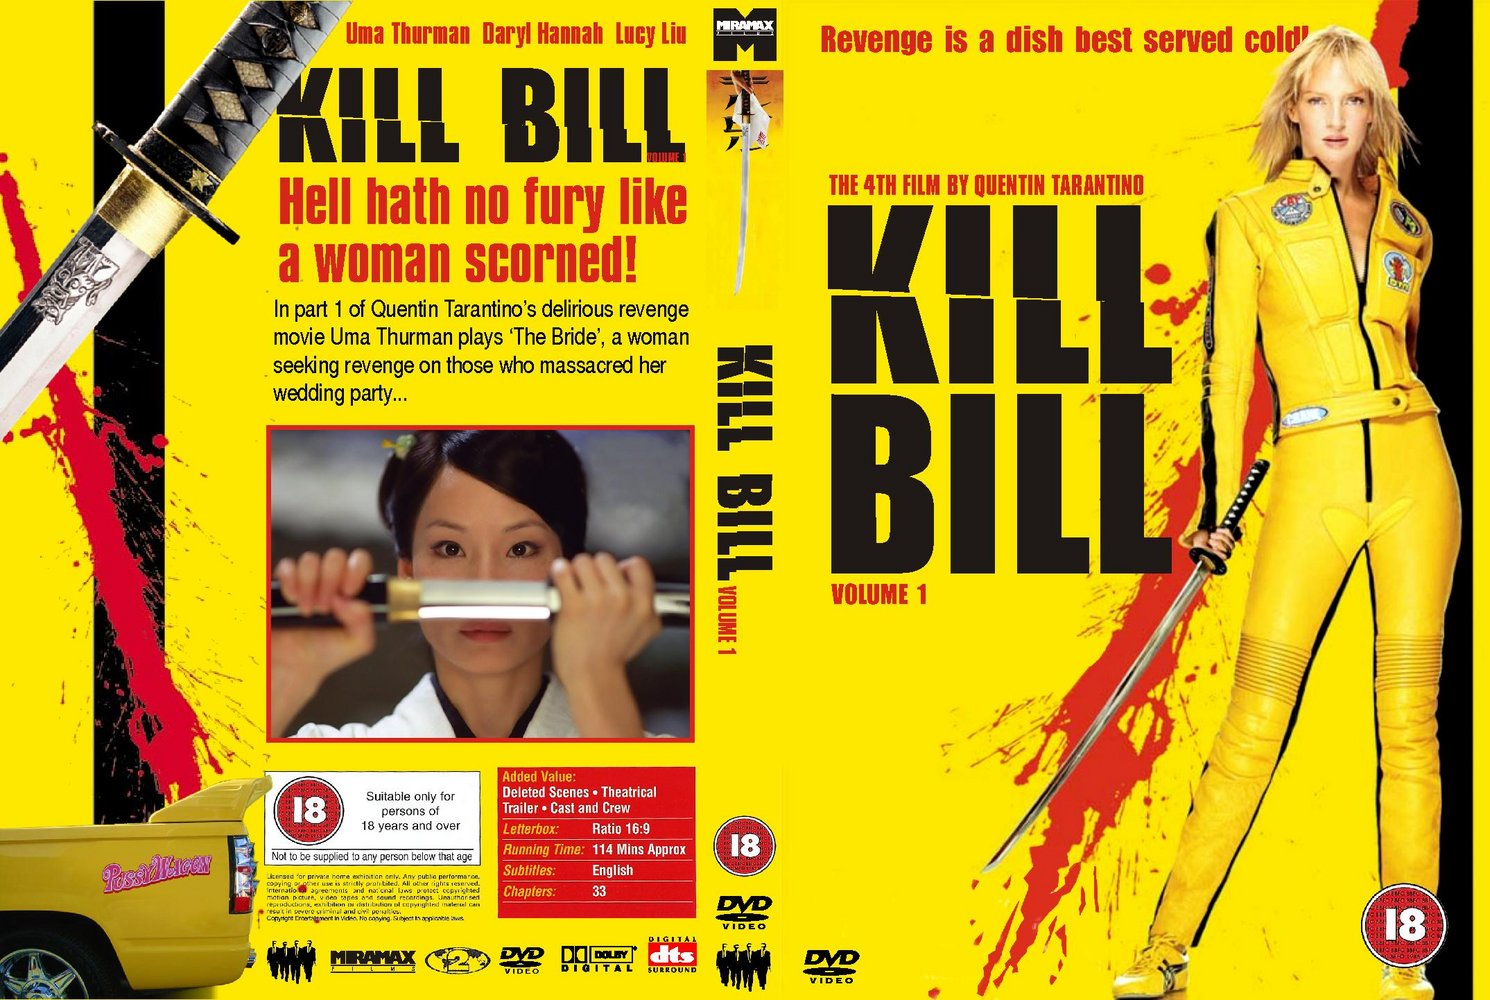 an analysis of kill bill vol 1 and pulp fictions and the meaning of violent scenes and cinematograph Check out our top free essays on graphical stylistic stylistic analysis of kill bill vol 1 his style drastically changed between pulp fiction and kill bill.